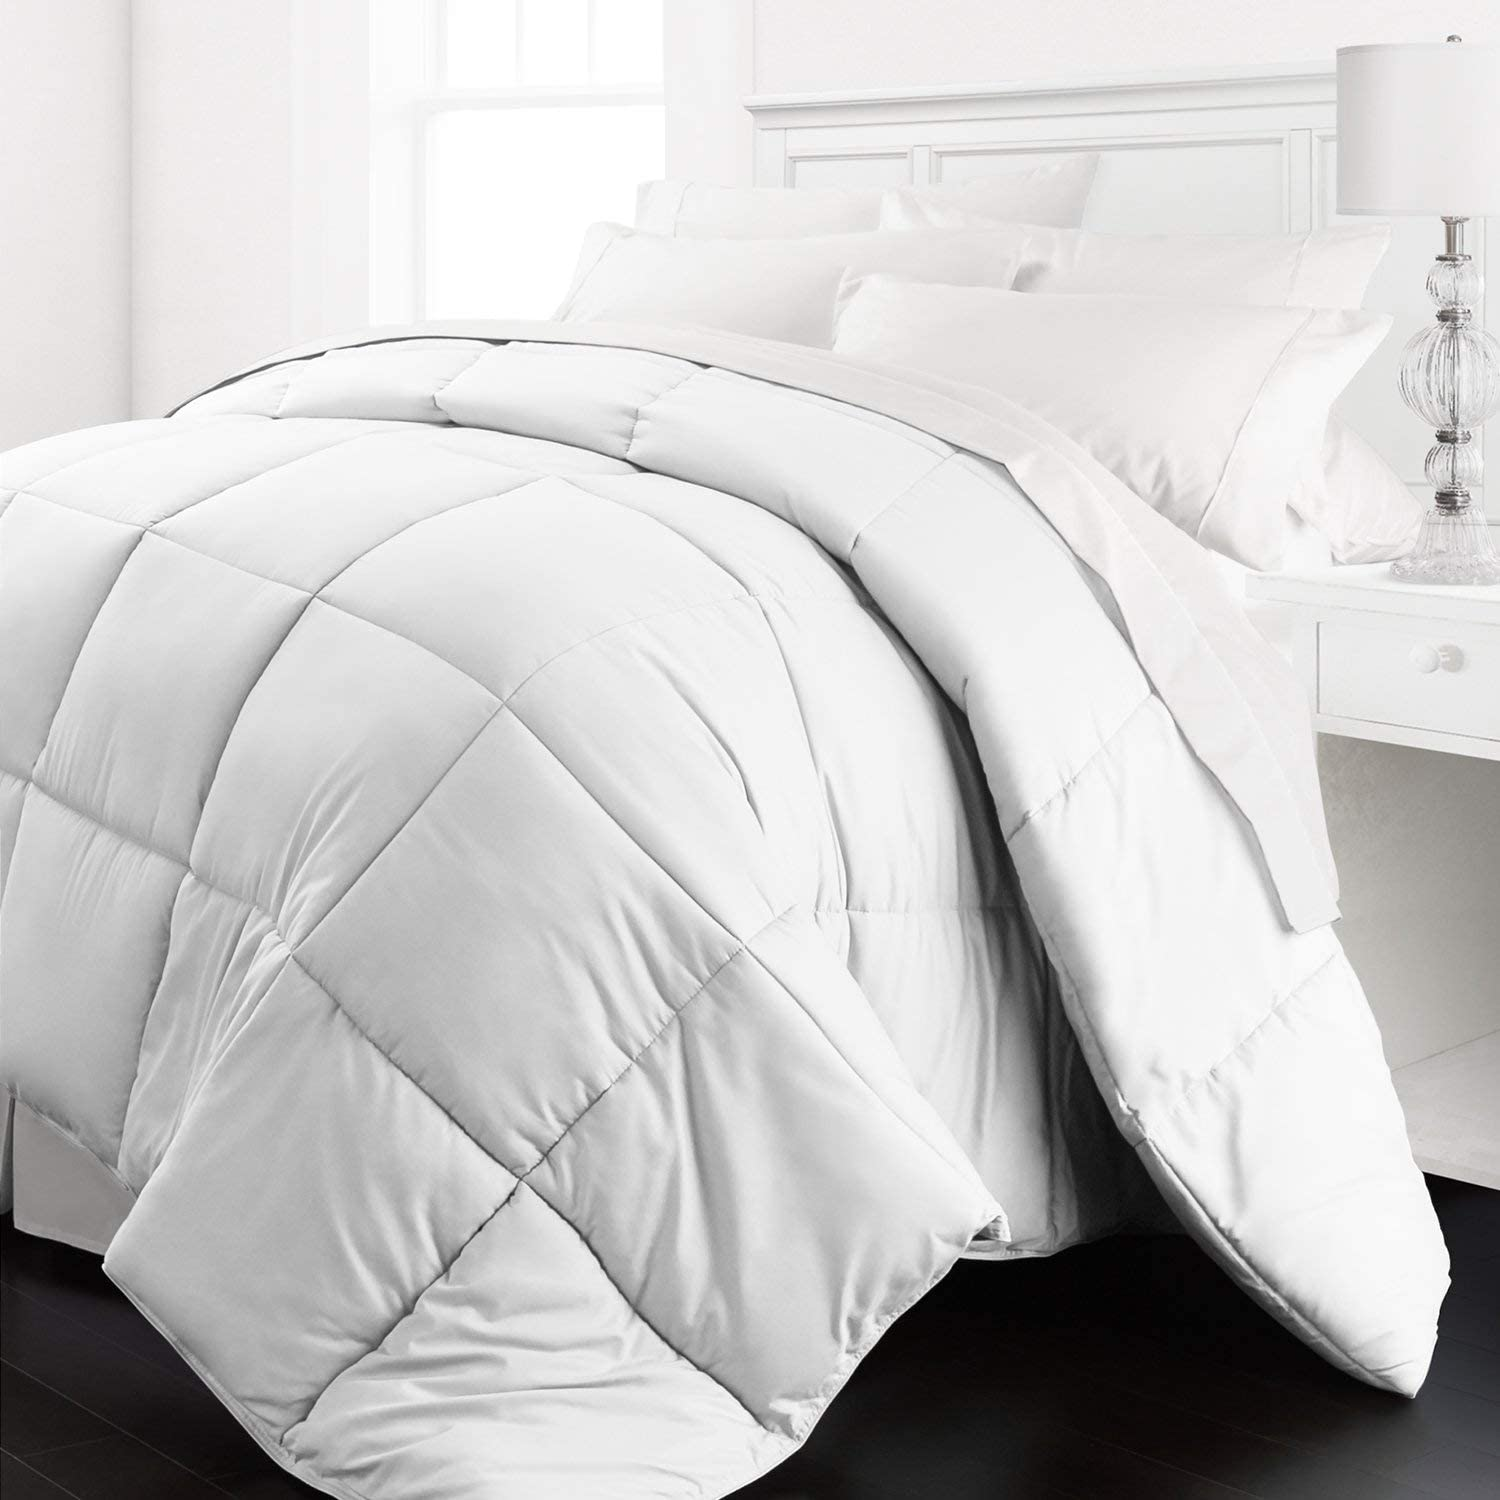 Beckham Hotel Collection - Lightweight All Season - Luxury Goose Down Alternative Comforter - Hotel Quality Comforter and Hypoallergenic-Full/Queen - White